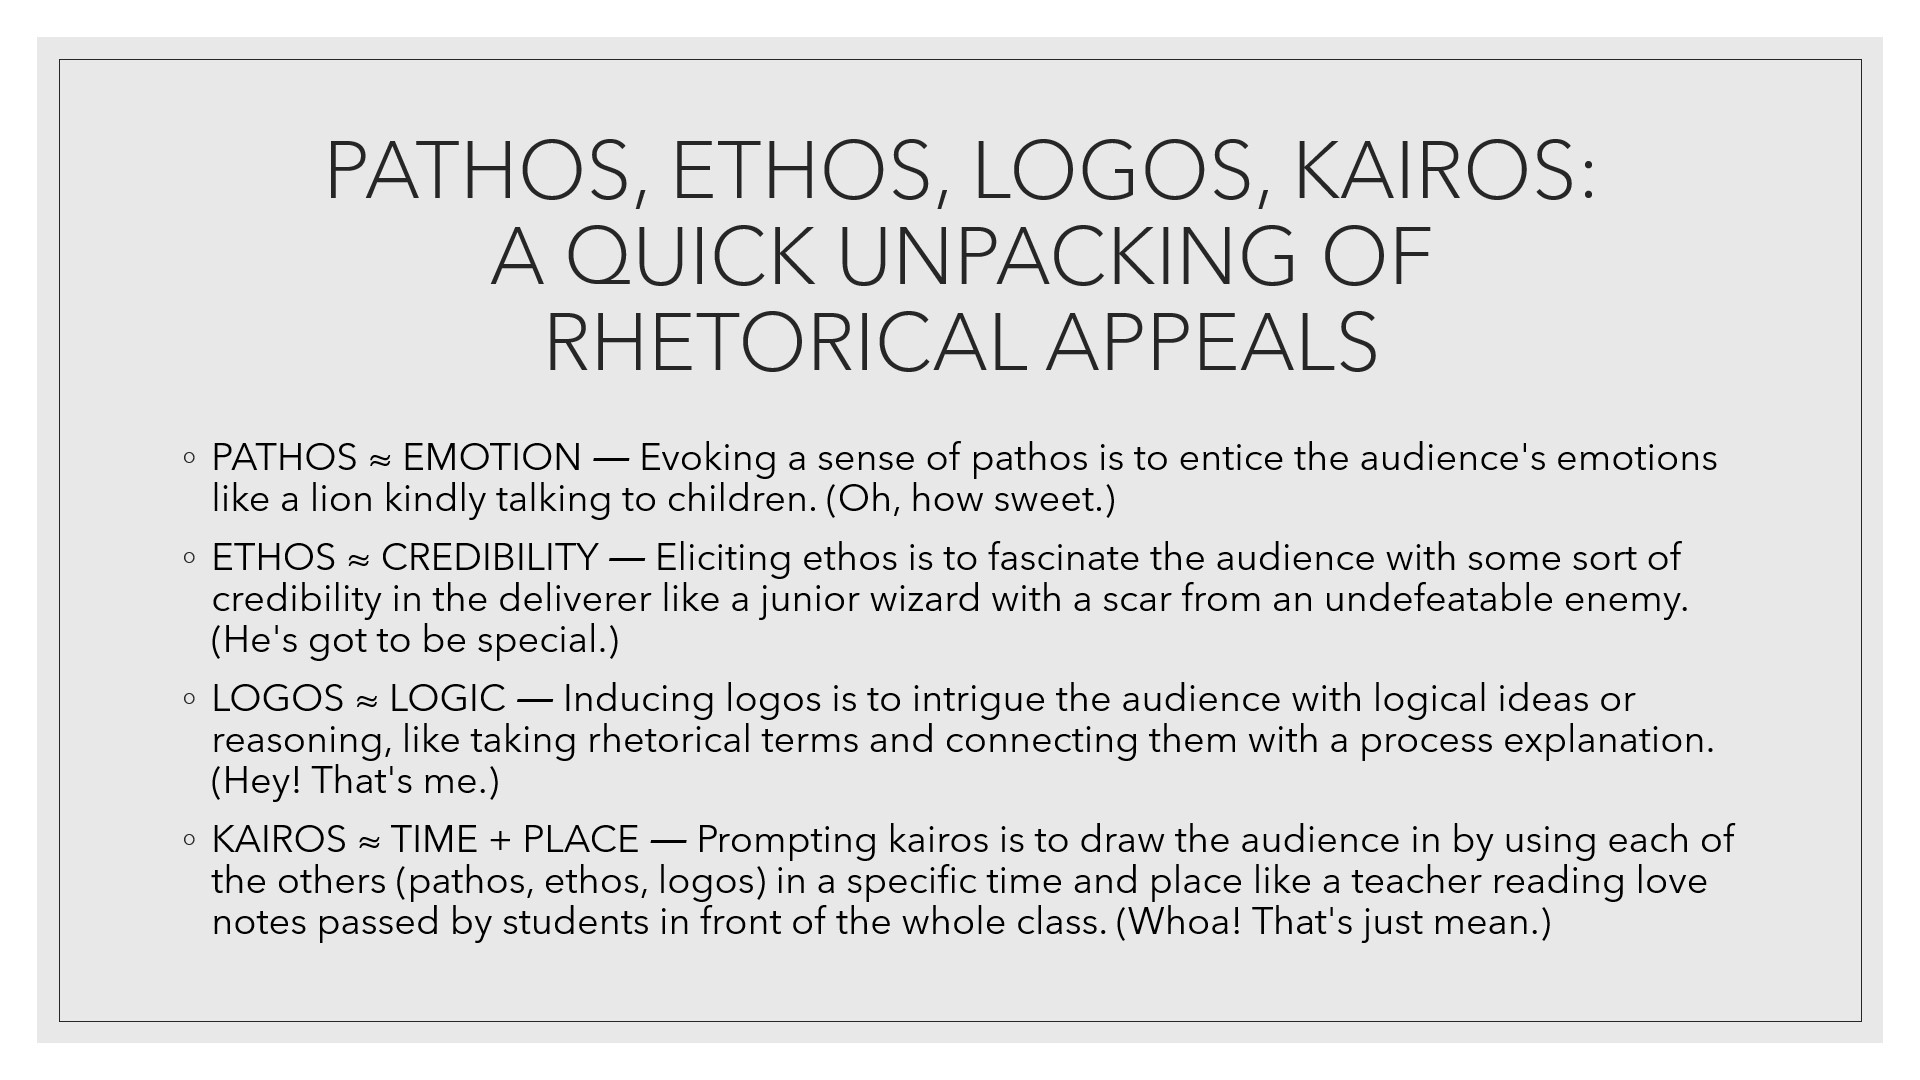 a quick unpacking of rhetorical appeals: pathos roughly equals emotion like a lion kindly talking to children; ethos roughly equals credibility like a junior wizard with a scar from an undefeatable enemy; logos roughly equals logic like taking rhetorical terms and linking them with a process; kairos roughly equals time and place, like a teacher reading confiscated love notes in front of the whole class